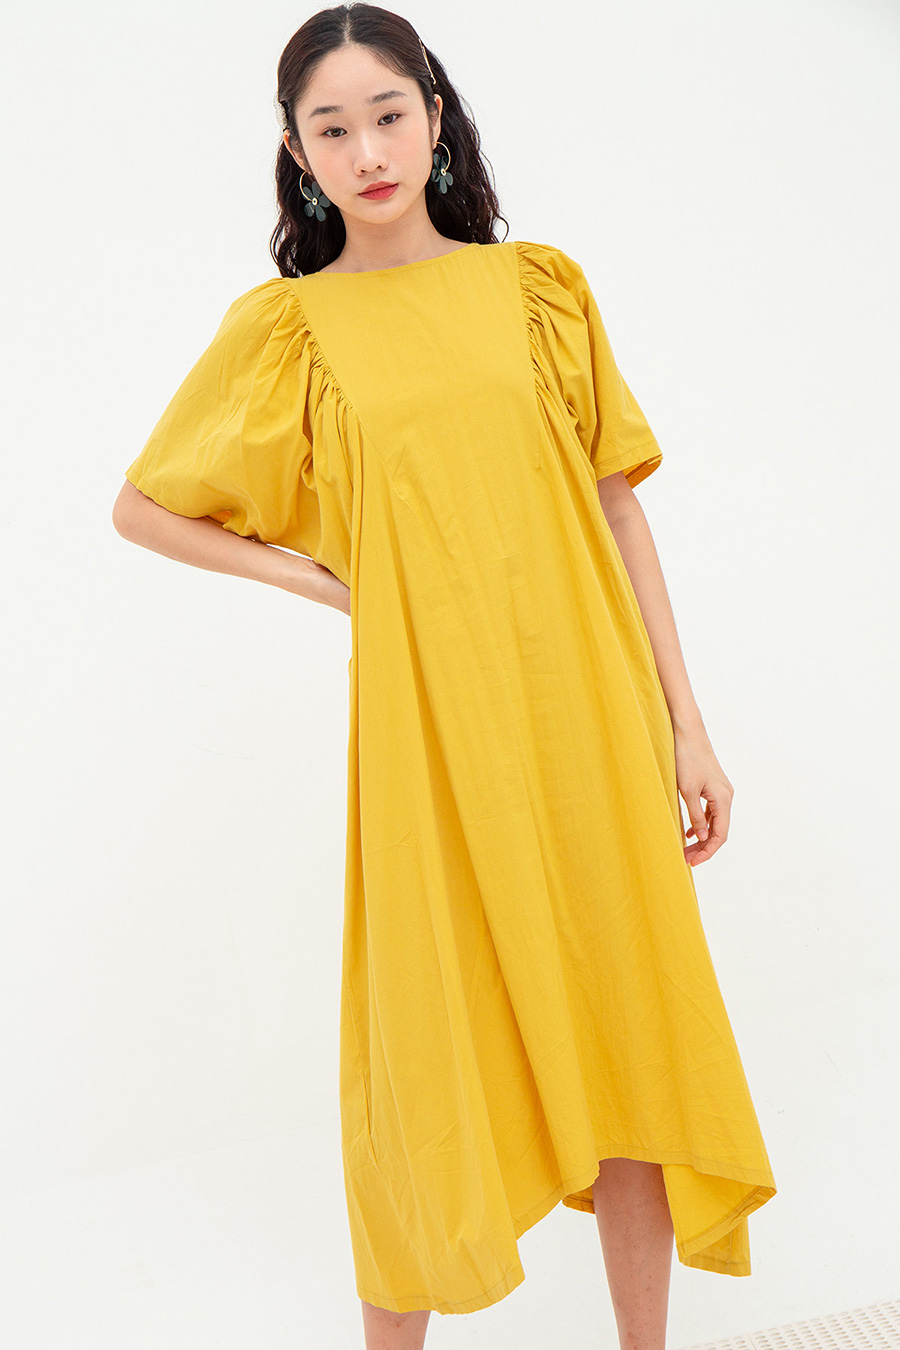 ELENORA DRESS - BUTTER